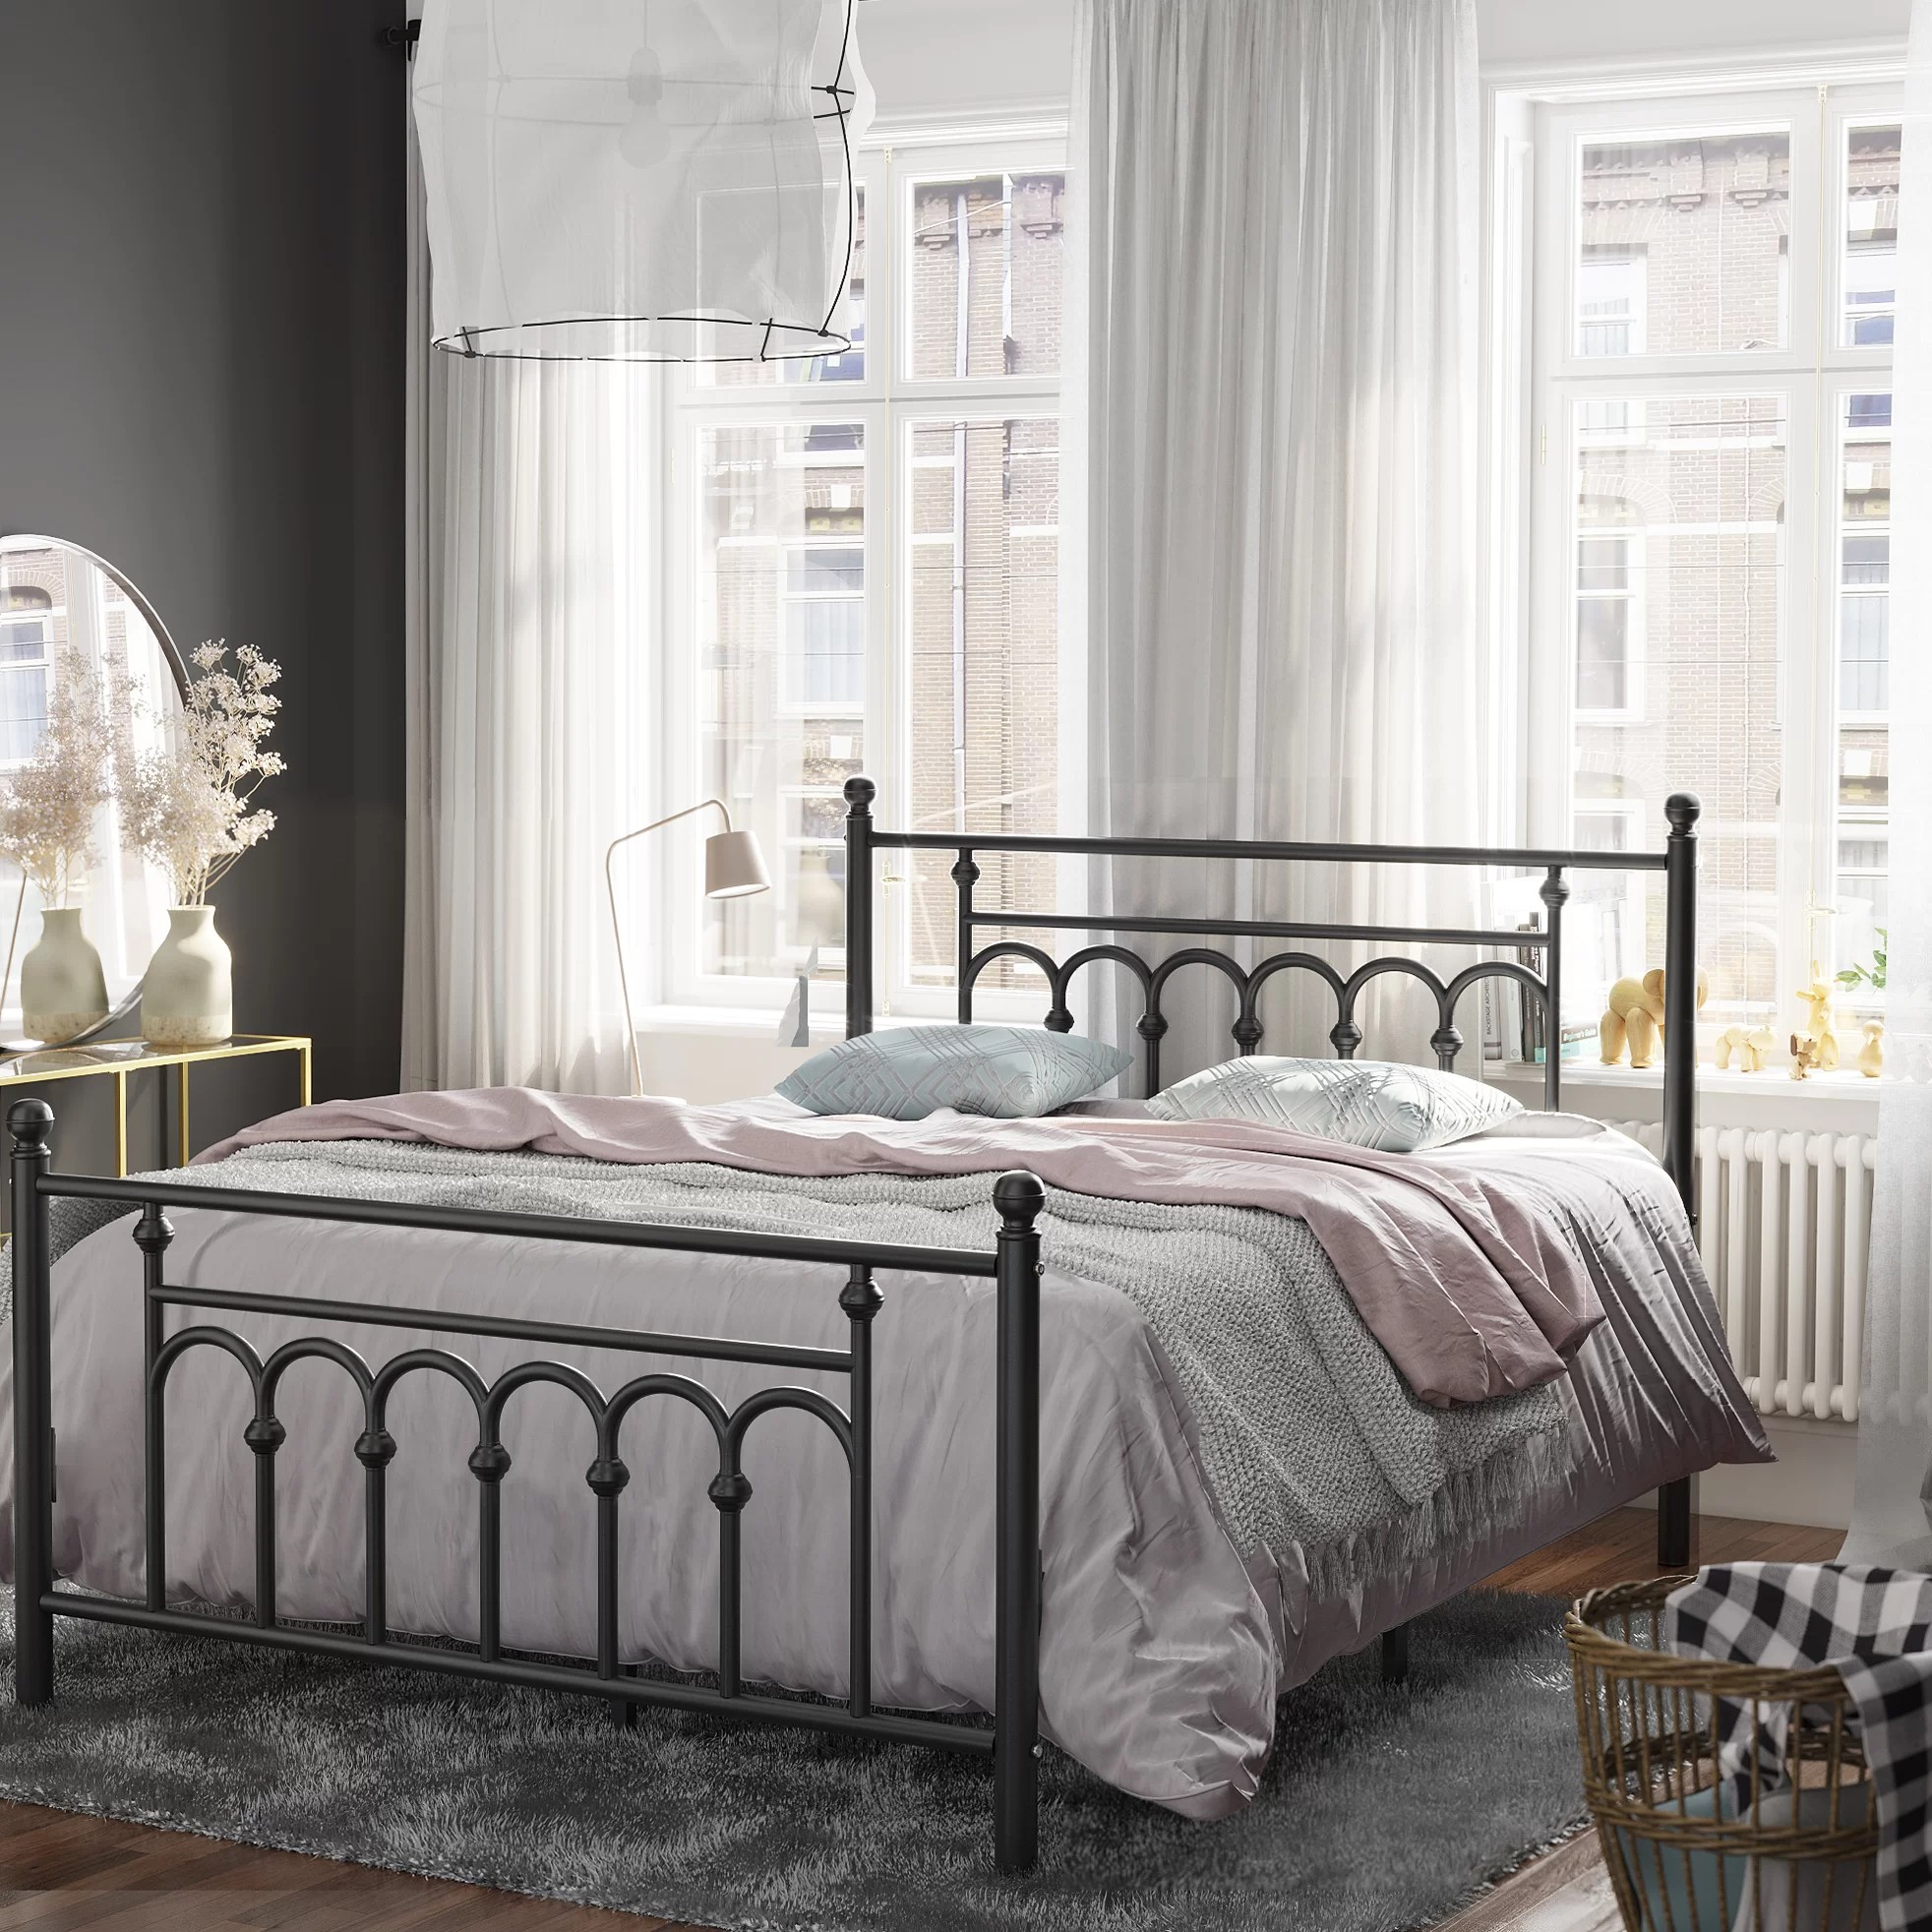 Winston Porter Twin Size Metal Bed Frame With Headboard Footboard No Box Spring Needed Platform Bed Under Bed Storage Victorian Vintage Style White A9d60158f24048059497dcffb0f7ce40 Reviews Wayfair Ca